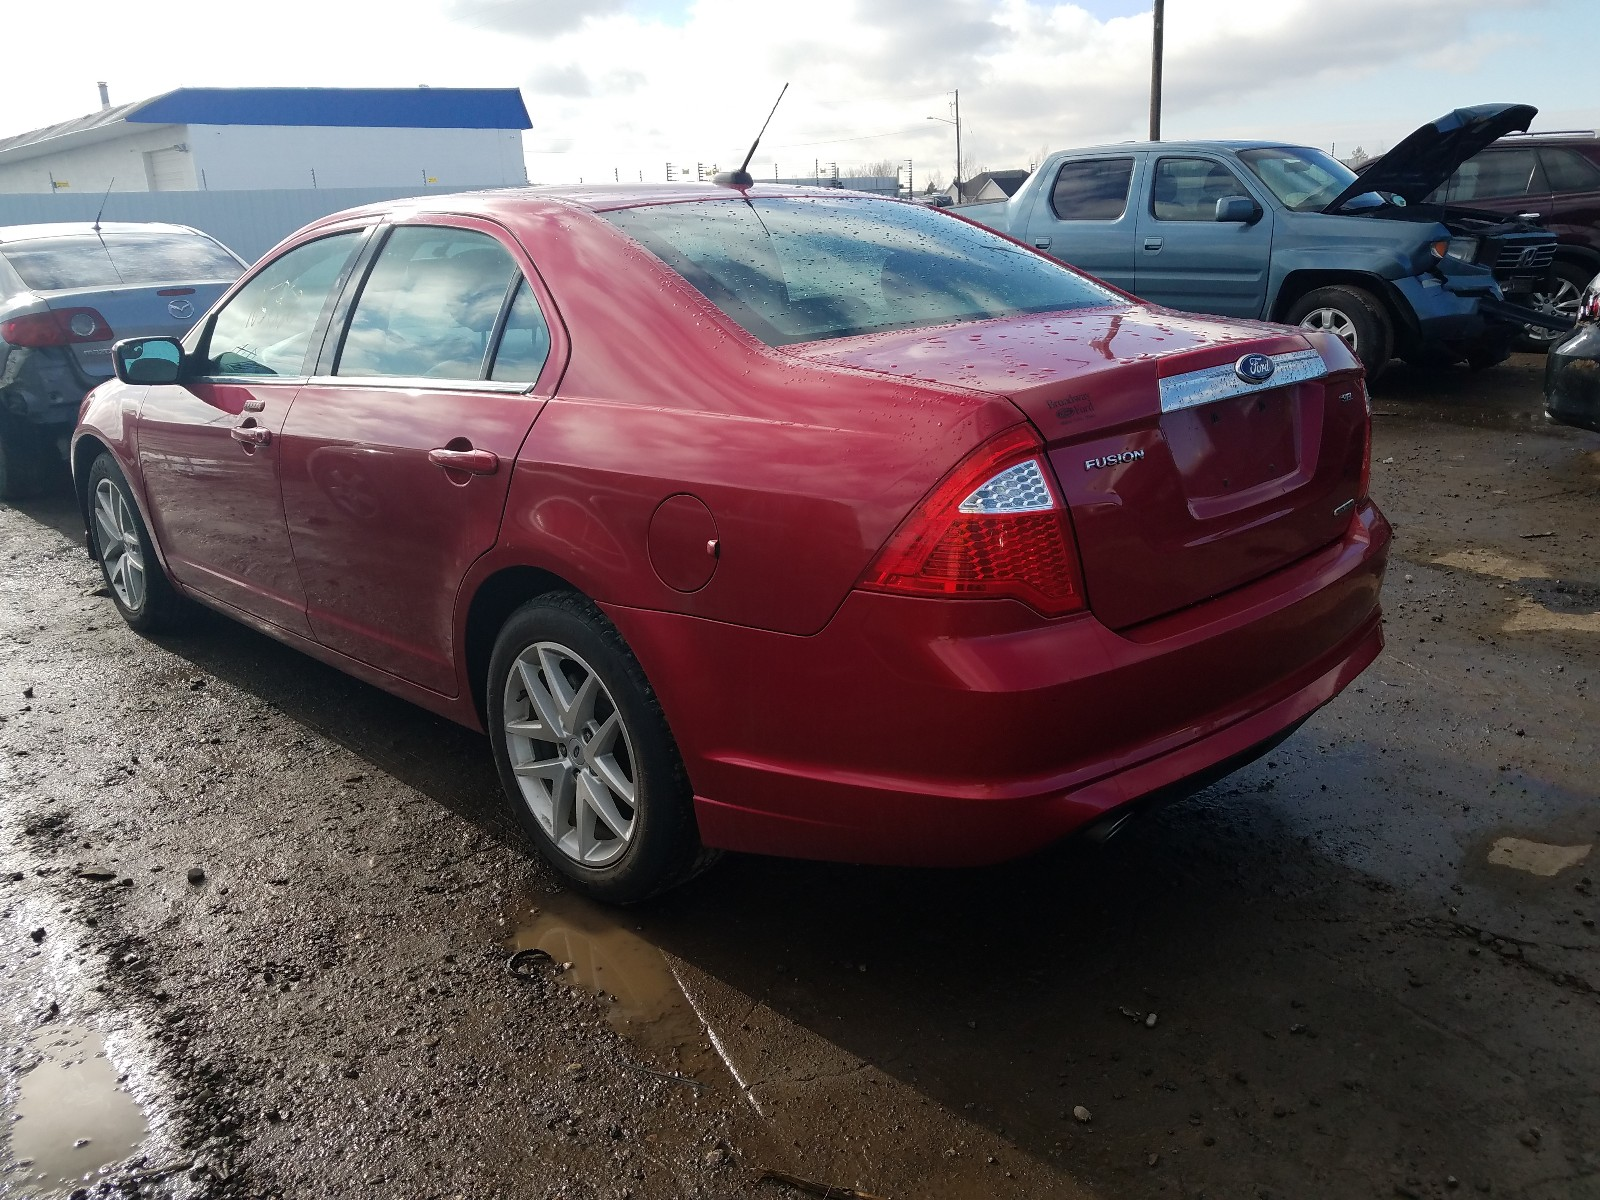 2012 Ford Fusion Sel 3.0L [Angle] View